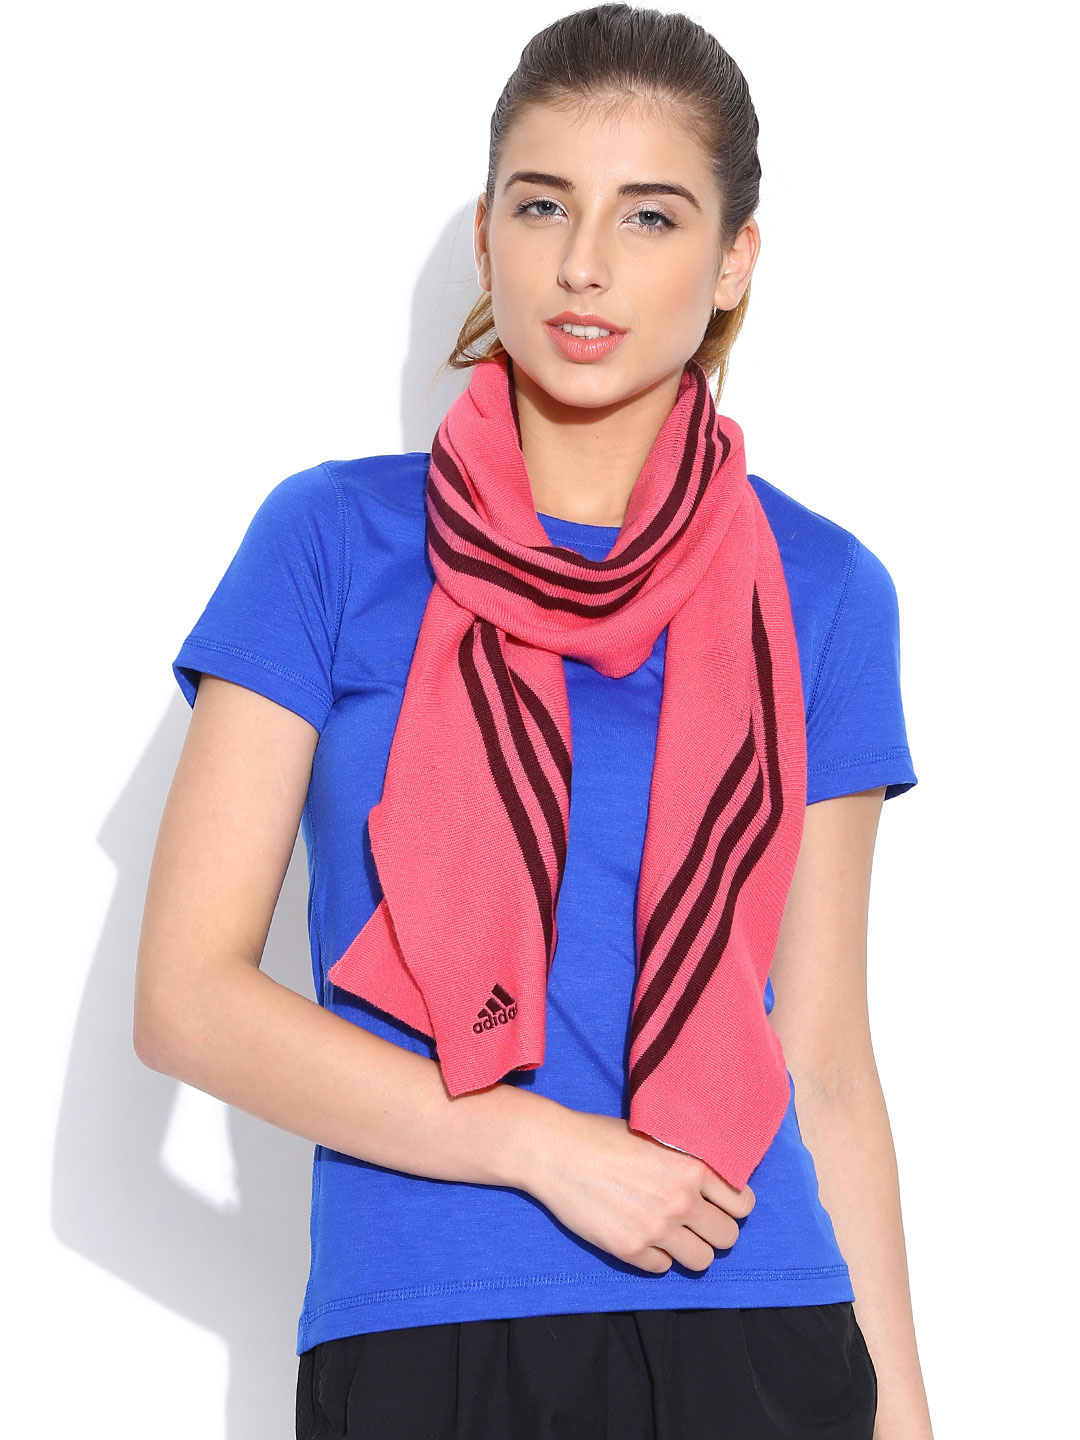 A Model in Blue tshirt and adidas pink Ess Striped Stole